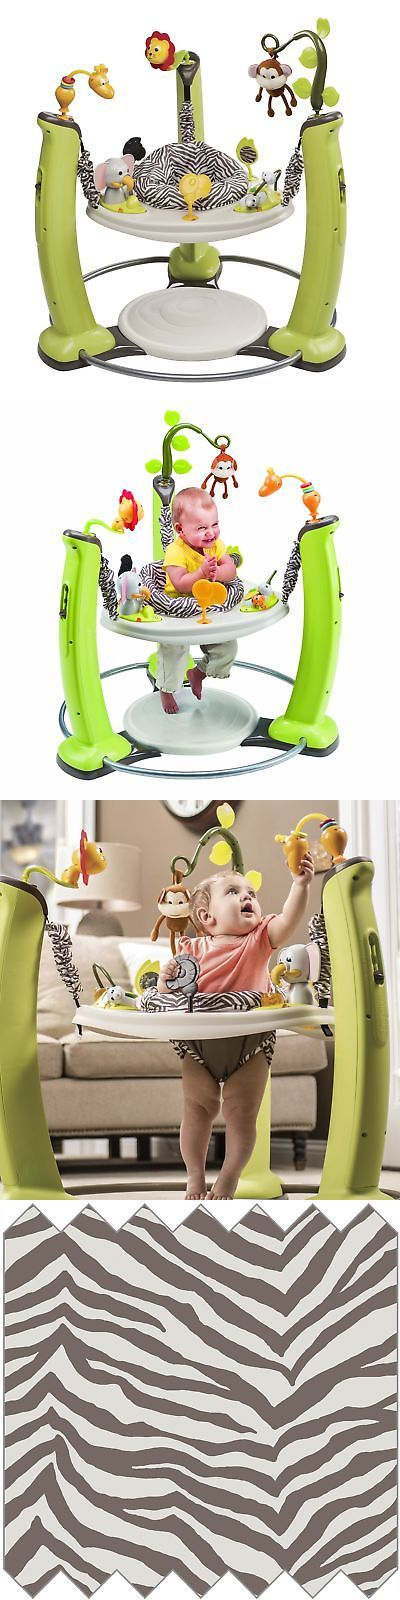 Baby Jumping Exercisers 117032: Evenflo Exersaucer Jump And Learn Jumper, Baby Activity Center, Jungle Quest New -> BUY IT NOW ONLY: $109.89 on eBay!